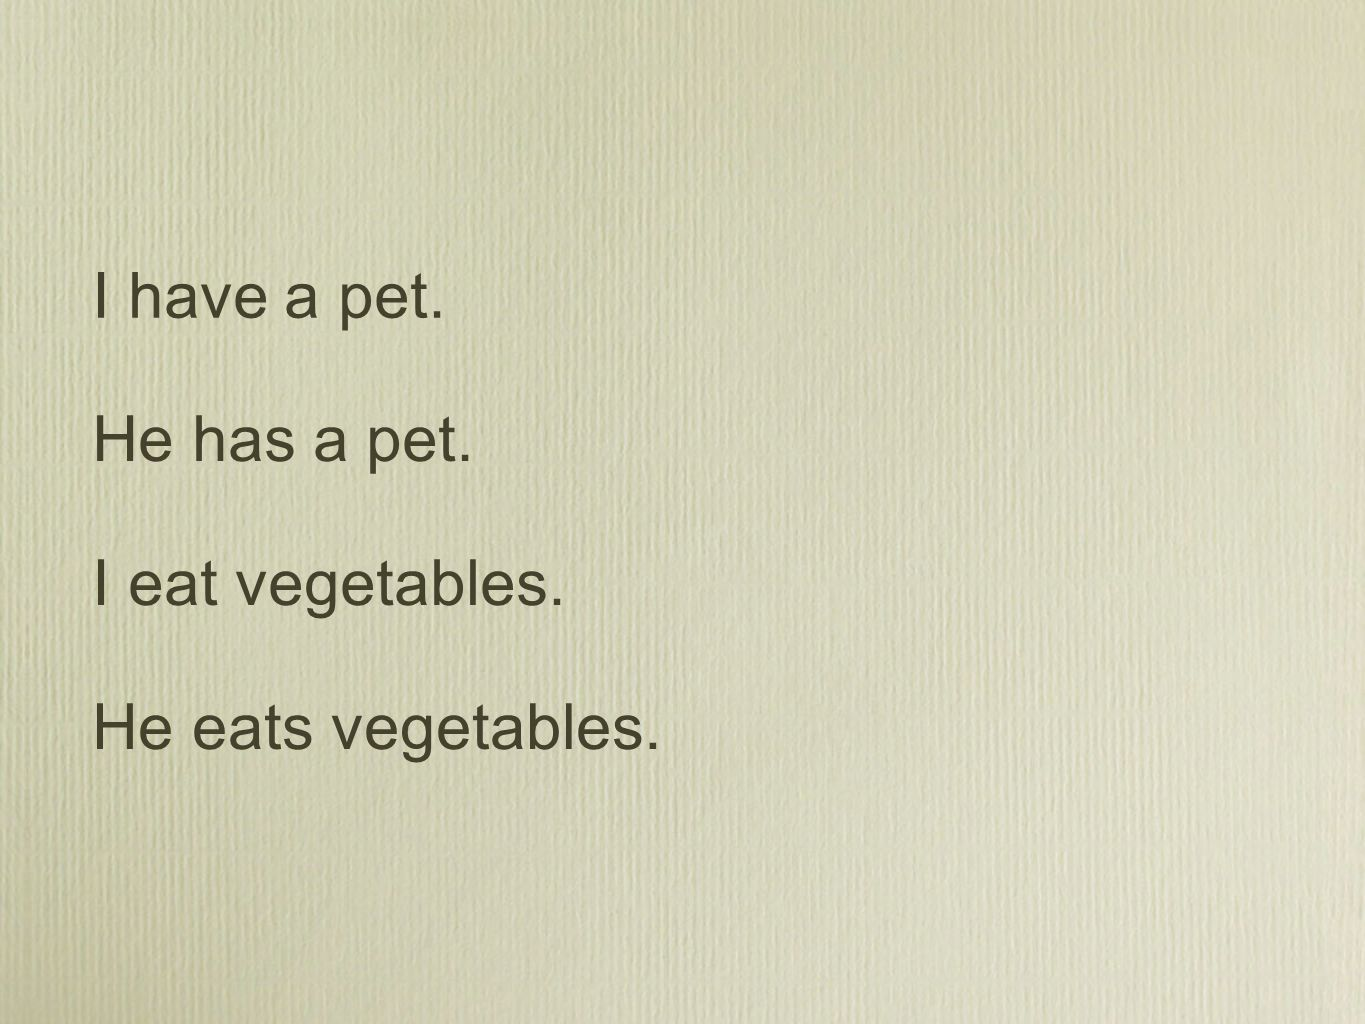 I have a pet. He has a pet. I eat vegetables. He eats vegetables.